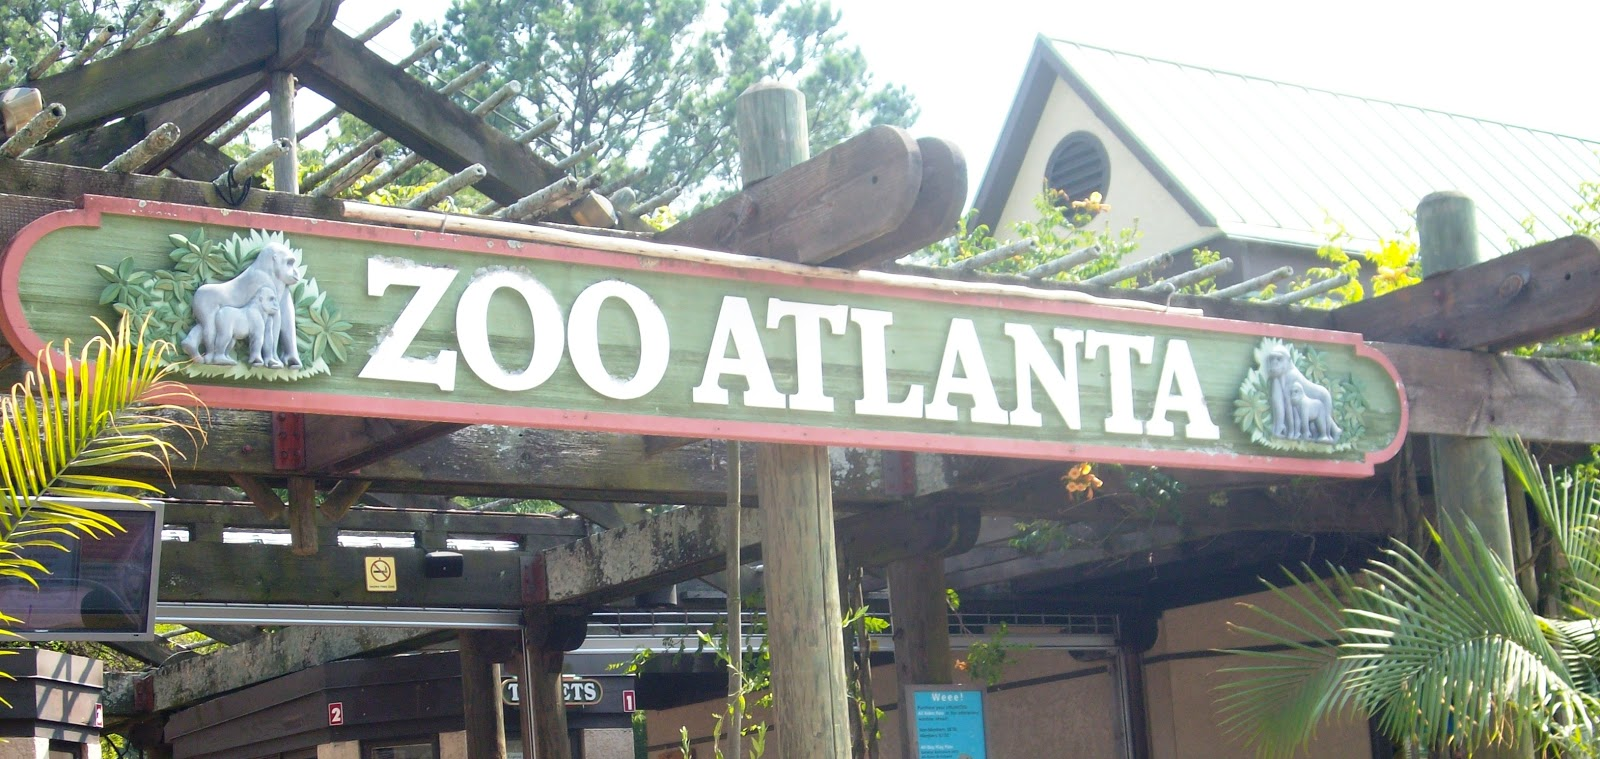 Zoo Atlanta is an Association of Zoos and Aquariums accredited zoological park in Atlanta, Georgia. Zoo Atlanta houses over 1, animals representing more than species. The zoo is home to the nation's largest zoological collections of gorillas and orangutans and is one of only four zoos in the U.S. currently housing giant pandas.